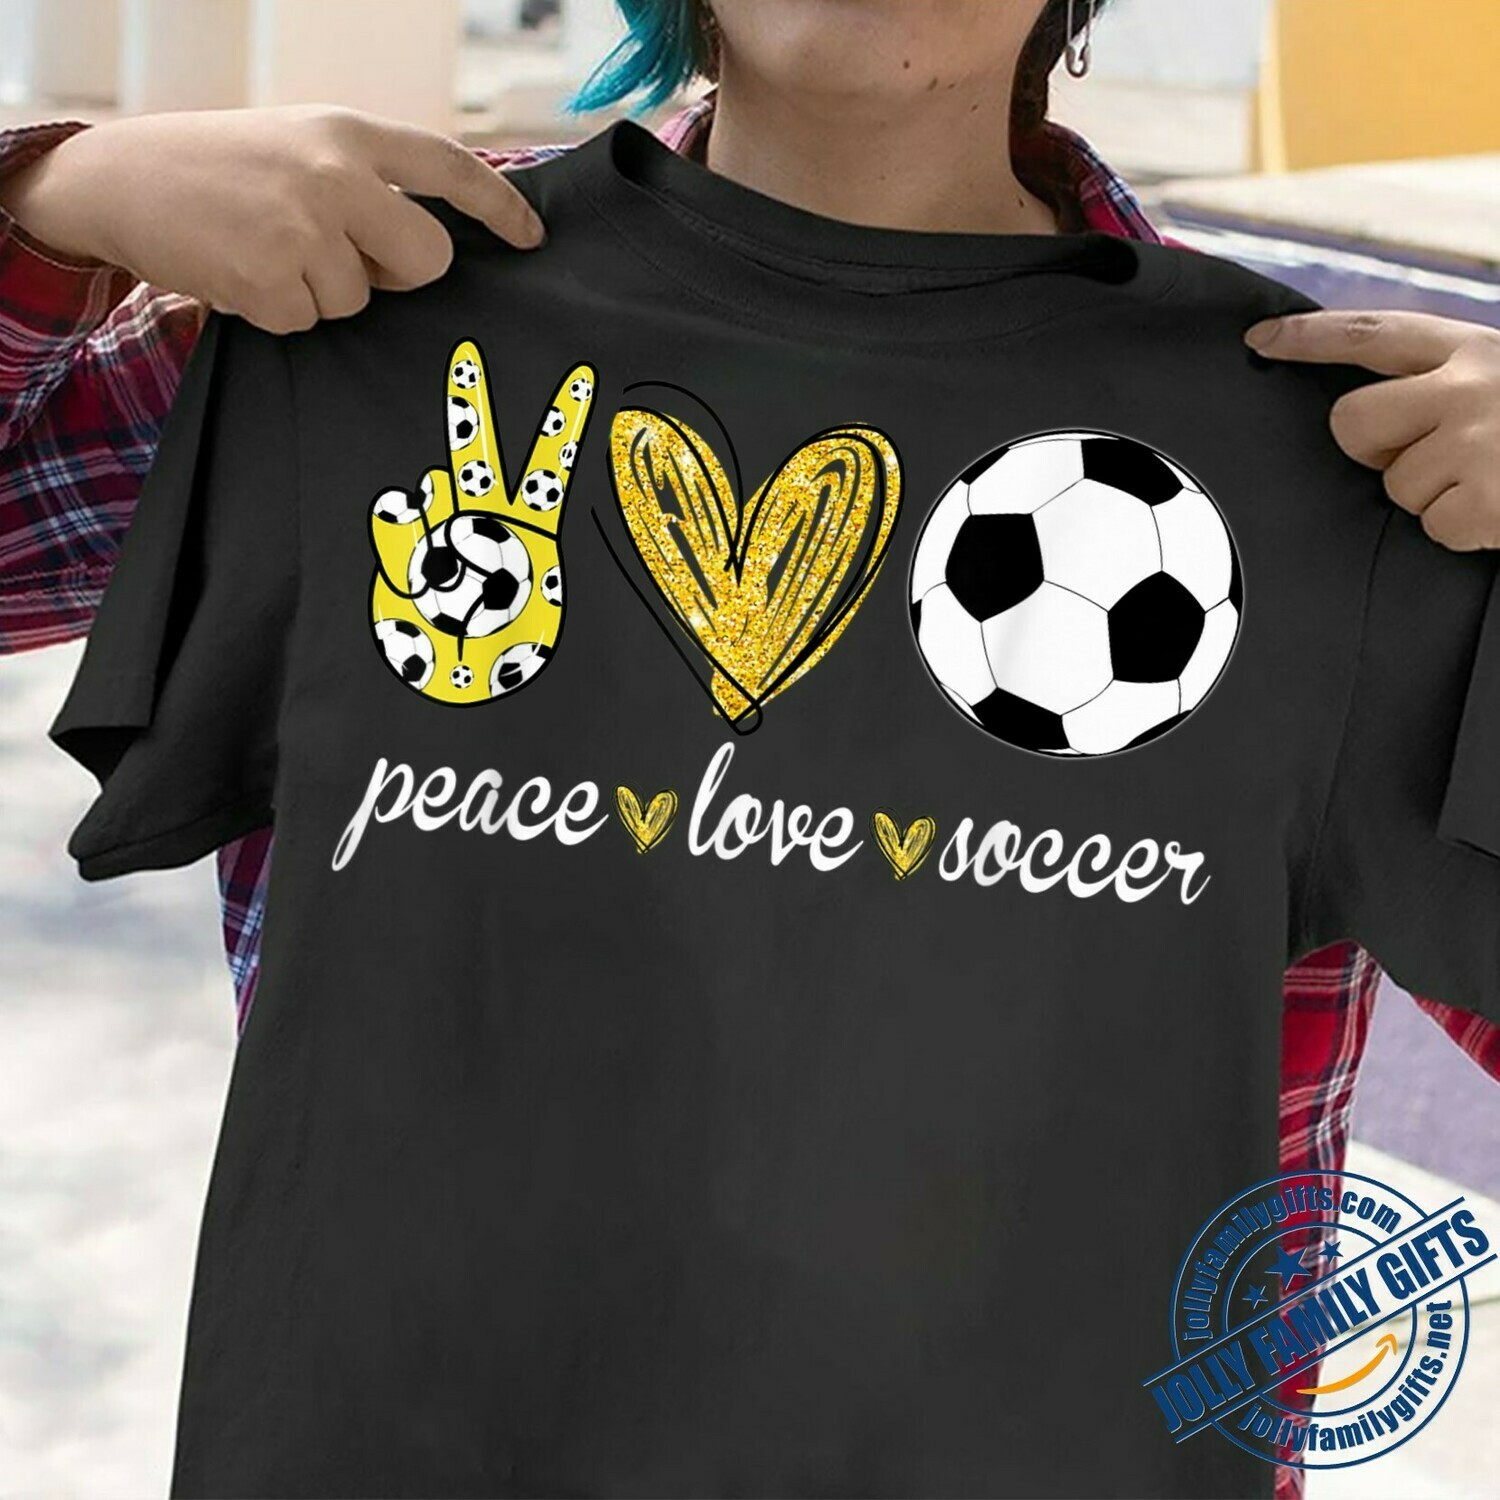 Peace Love Soccer The Love Of The Game for Men Women Player Coach Unisex T-Shirt Hoodie Sweatshirt Sweater Plus Size for Ladies Women Men Kids Youth Gifts Tee Jolly Family Gifts